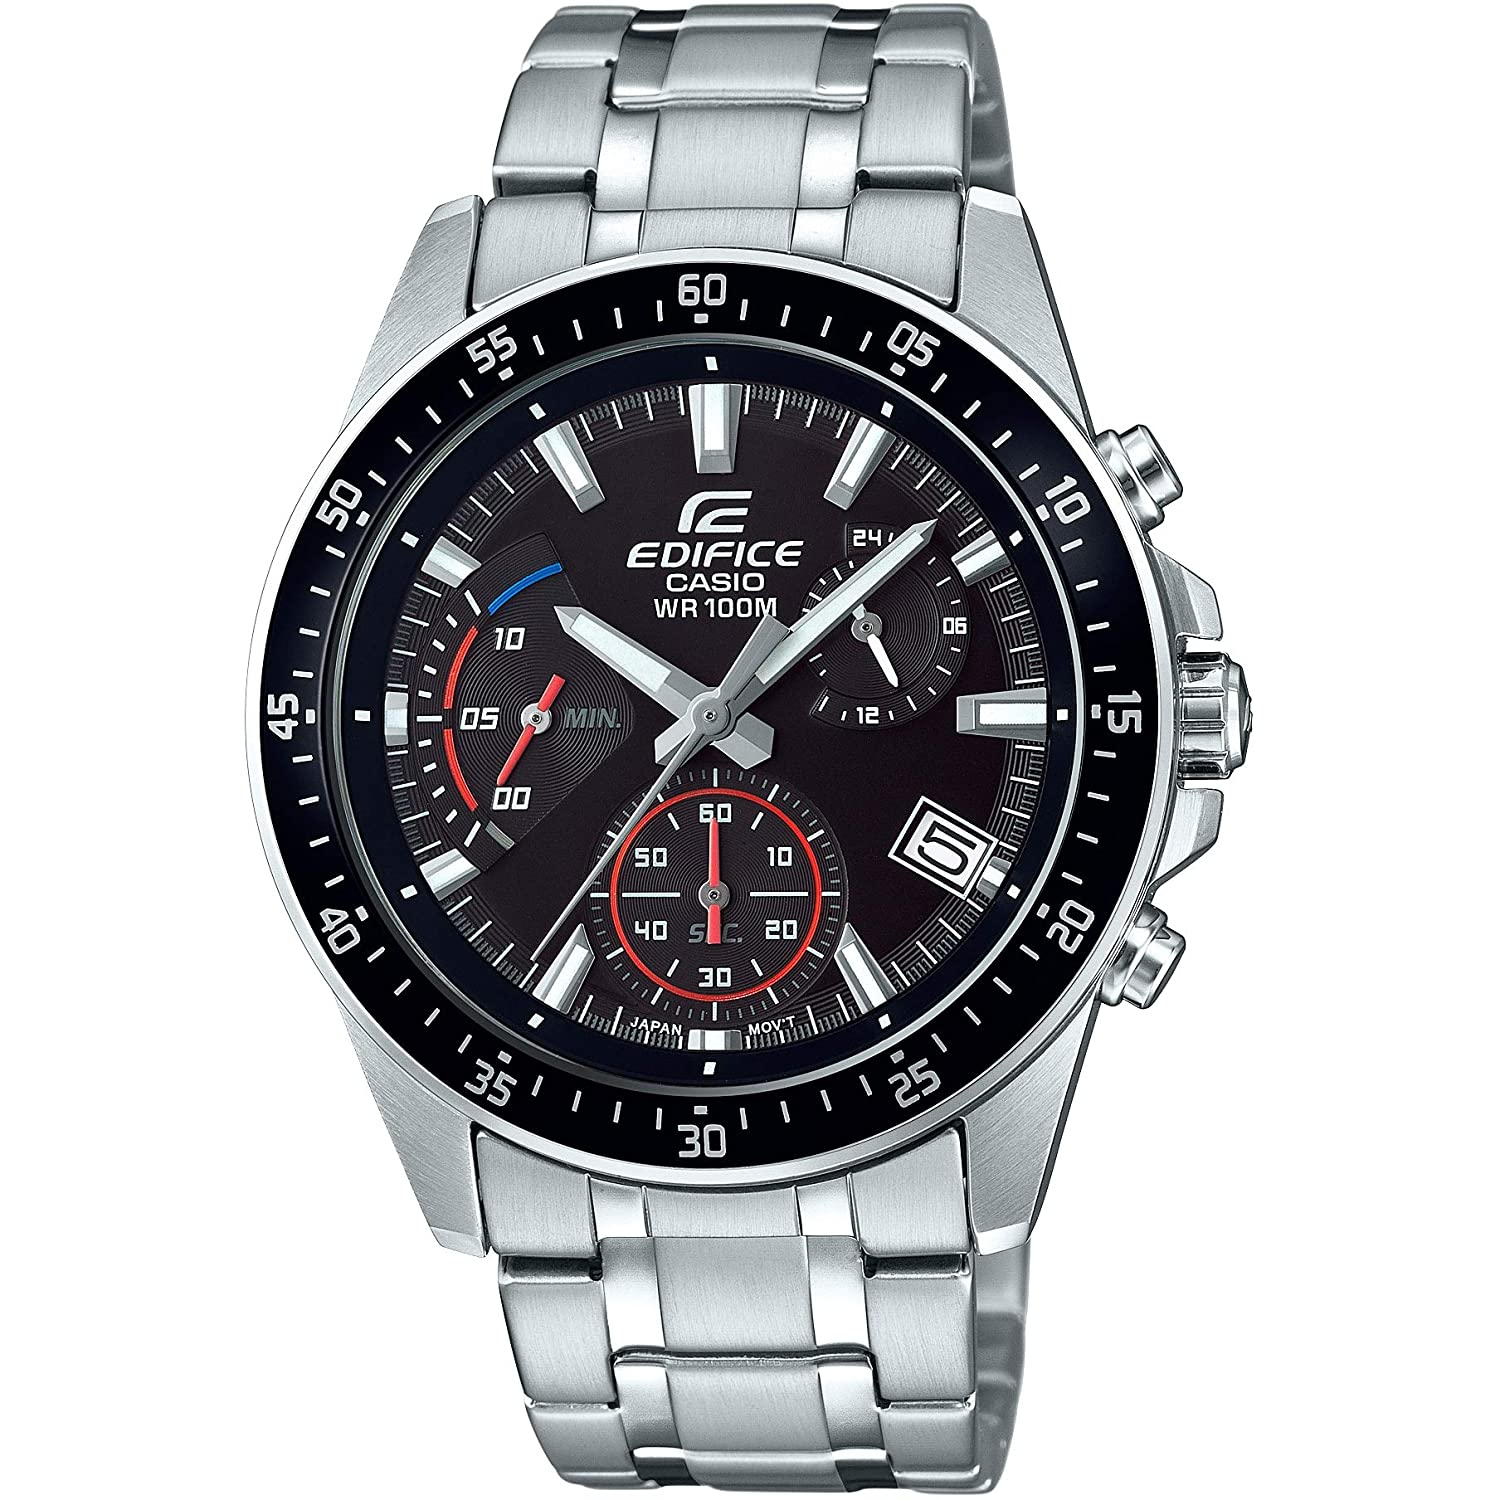 a5af9f7b8924 Casio Edifice Men s Watch EFV-540D-1AVUEF  Amazon.co.uk  Watches